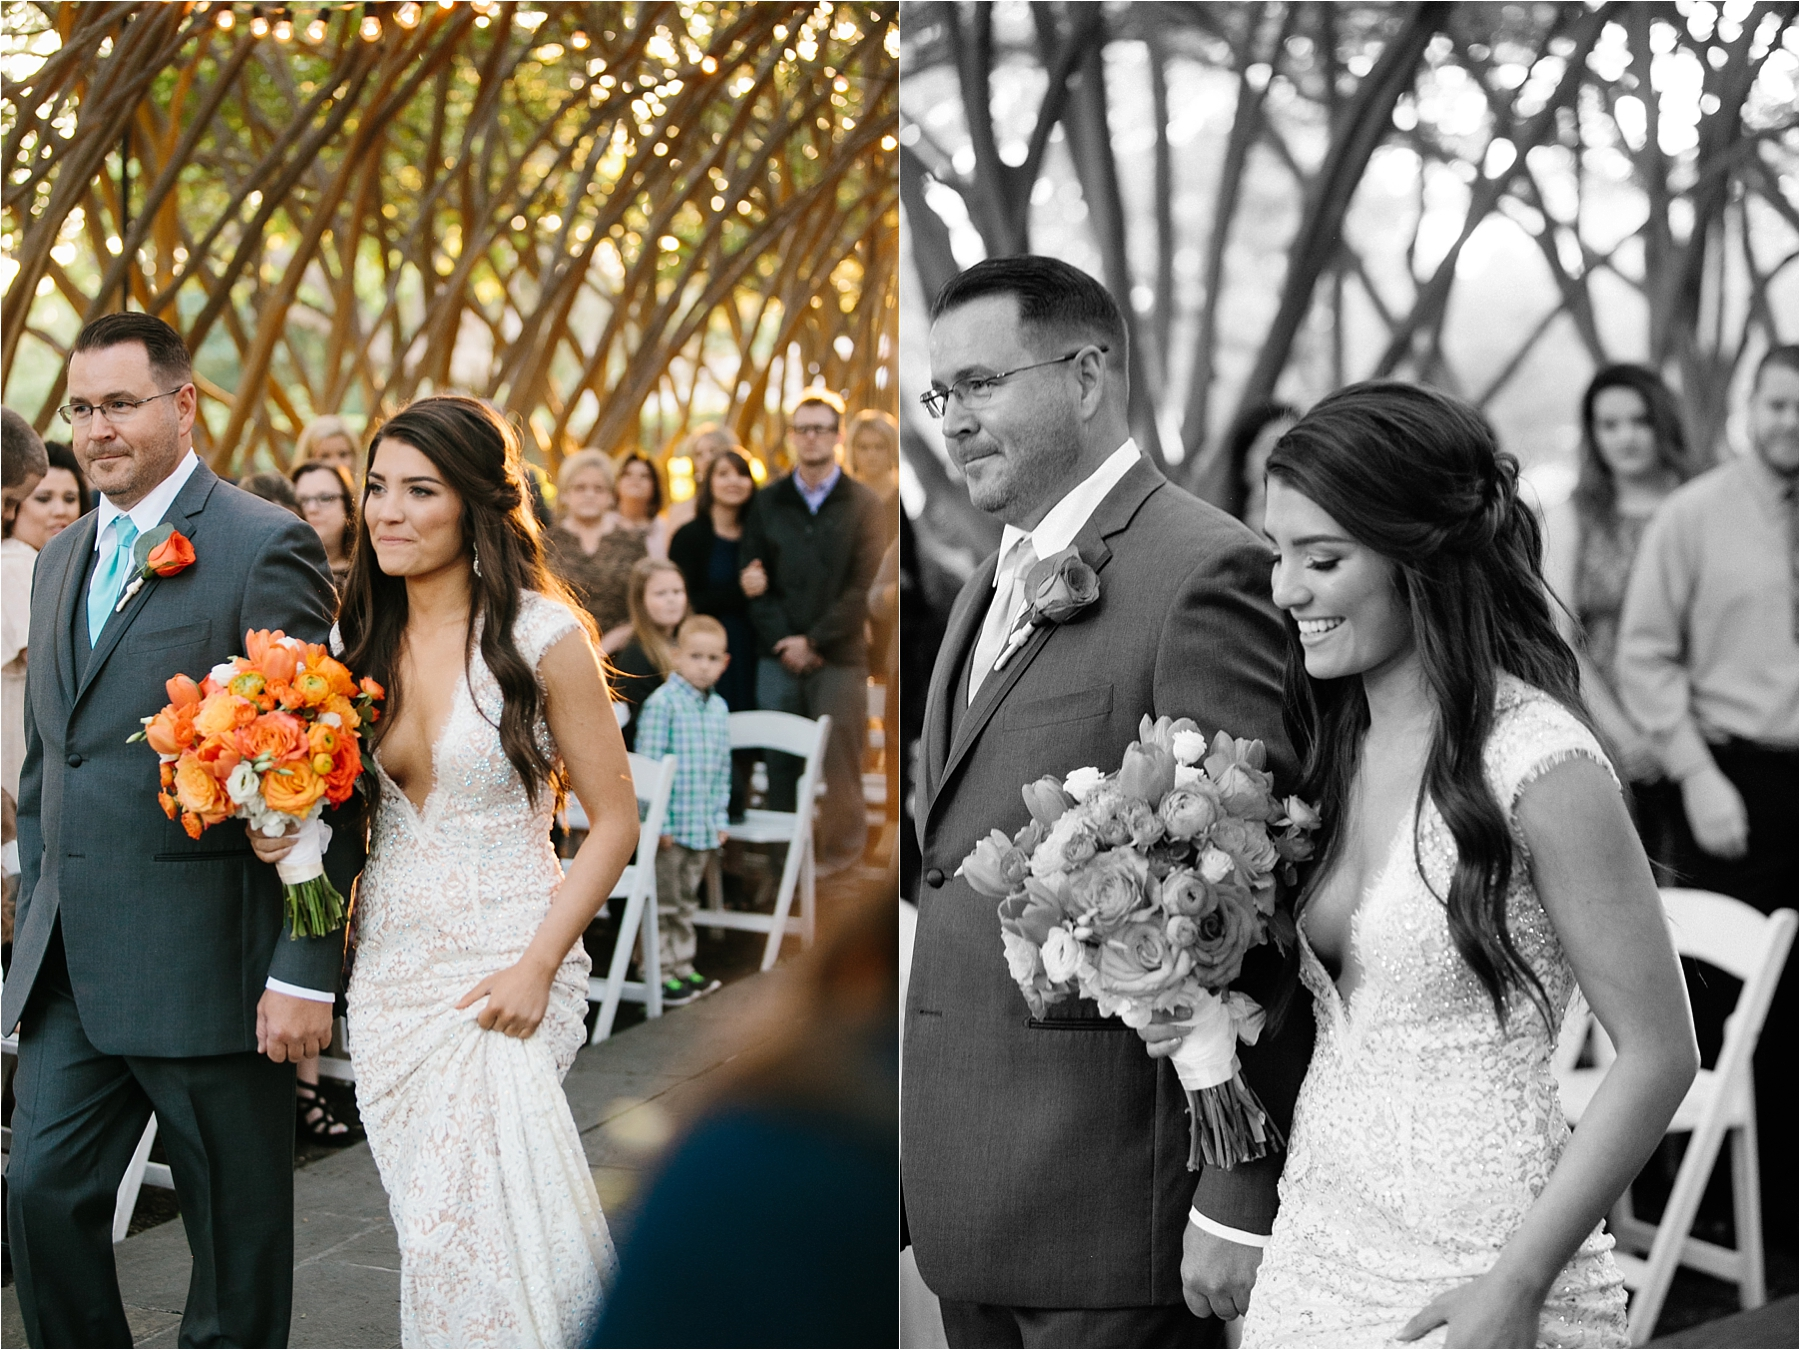 Devyn + Caden __ a Dallas Arboretum Garden Style Wedding by North Texas Wedding Photographer Rachel Meagan Photography __ 091